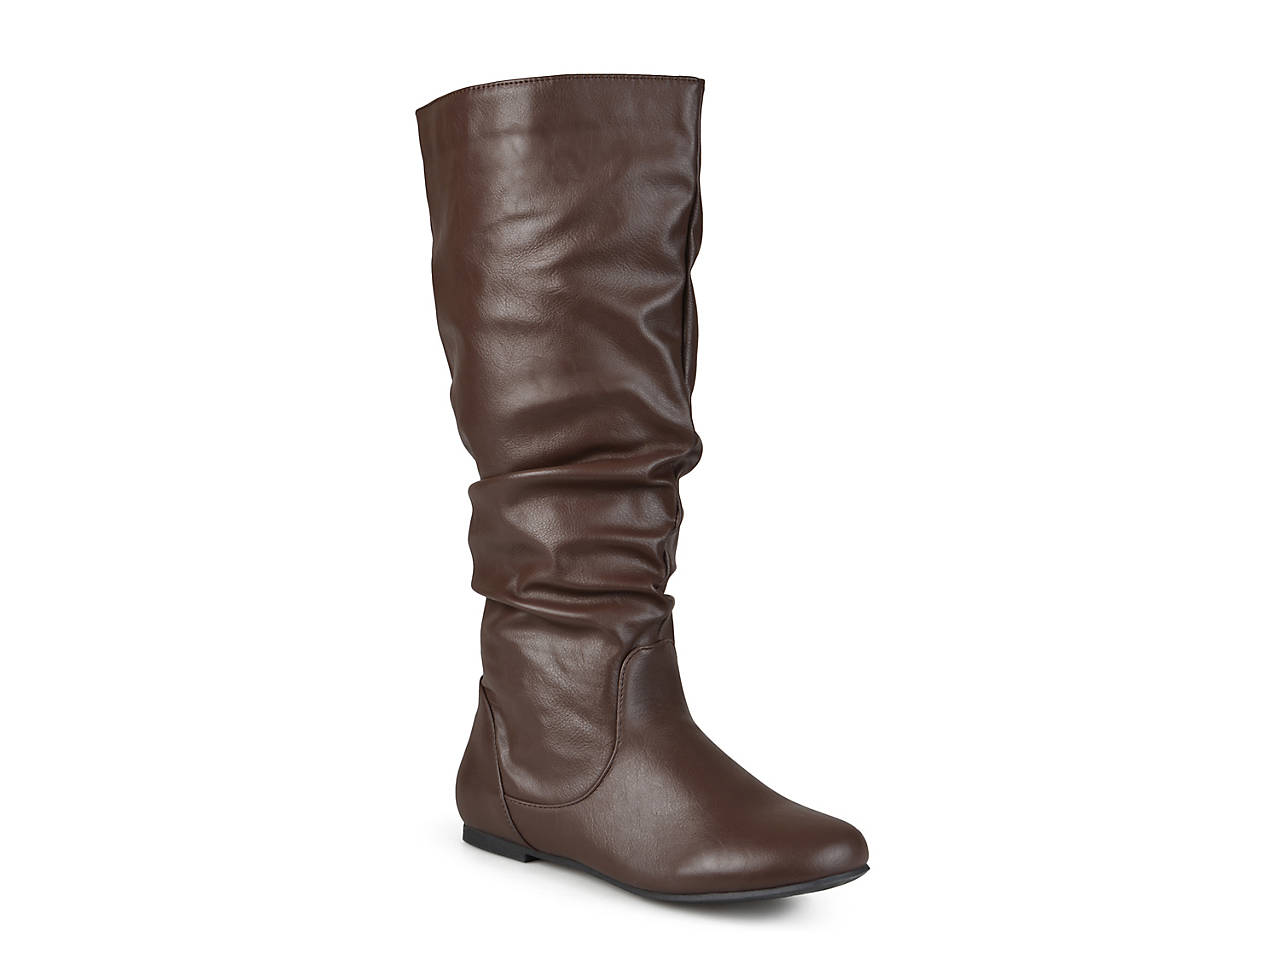 Women's Wide Calf Boots | DSW